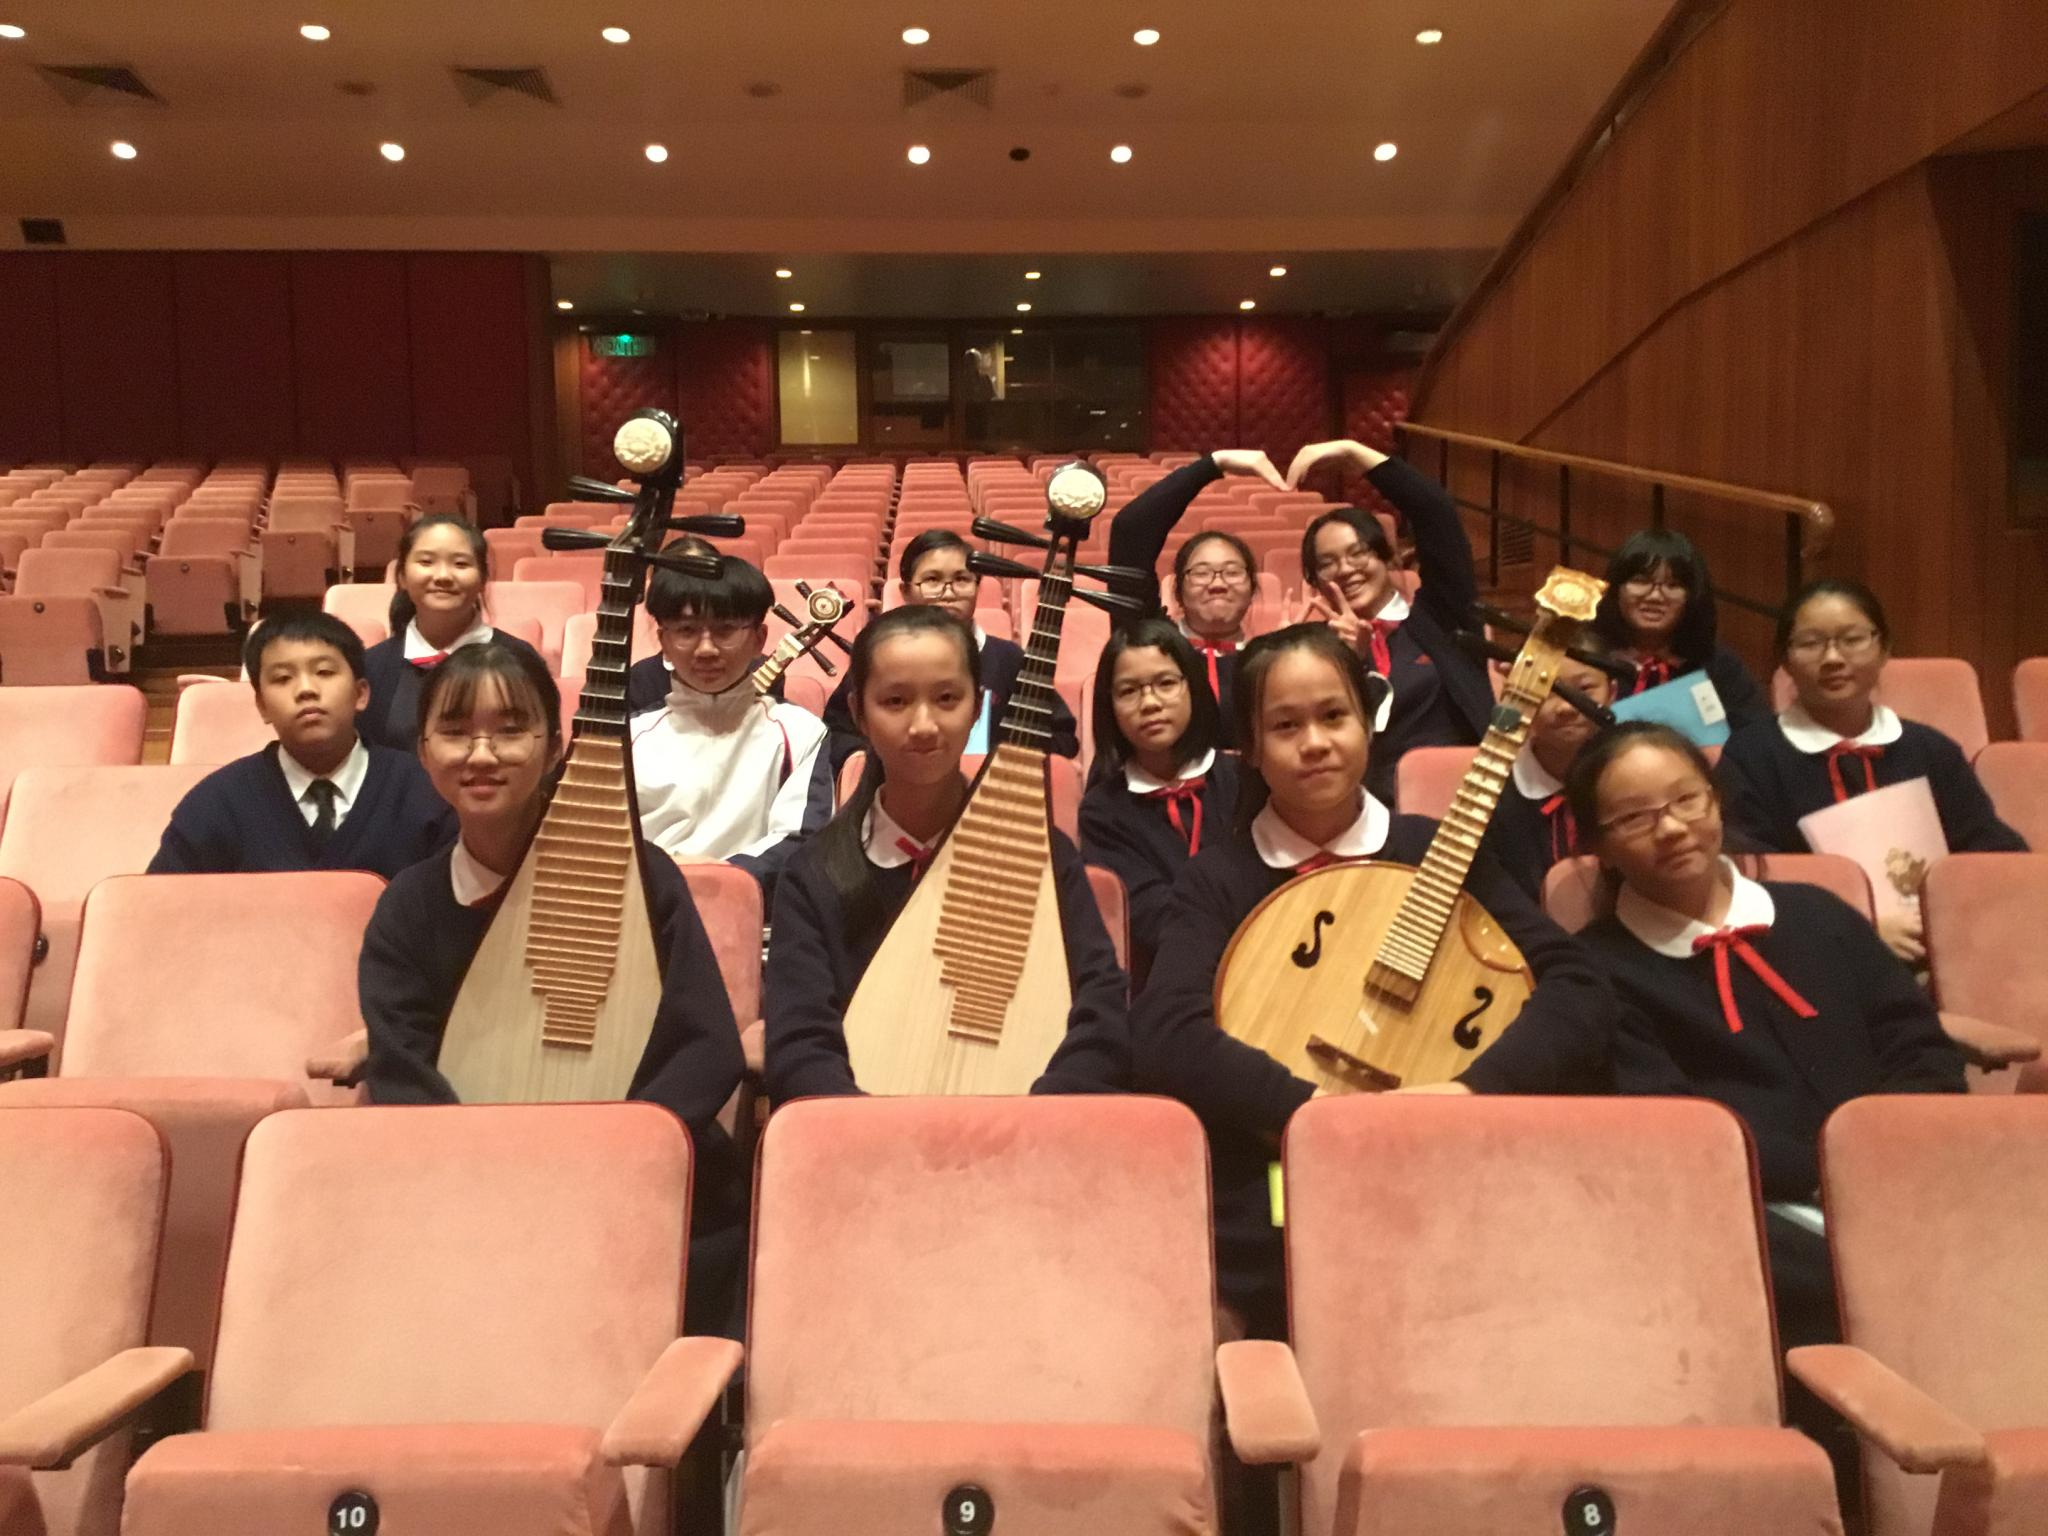 Members of the Chinese Orchestra are posing for a group photo.